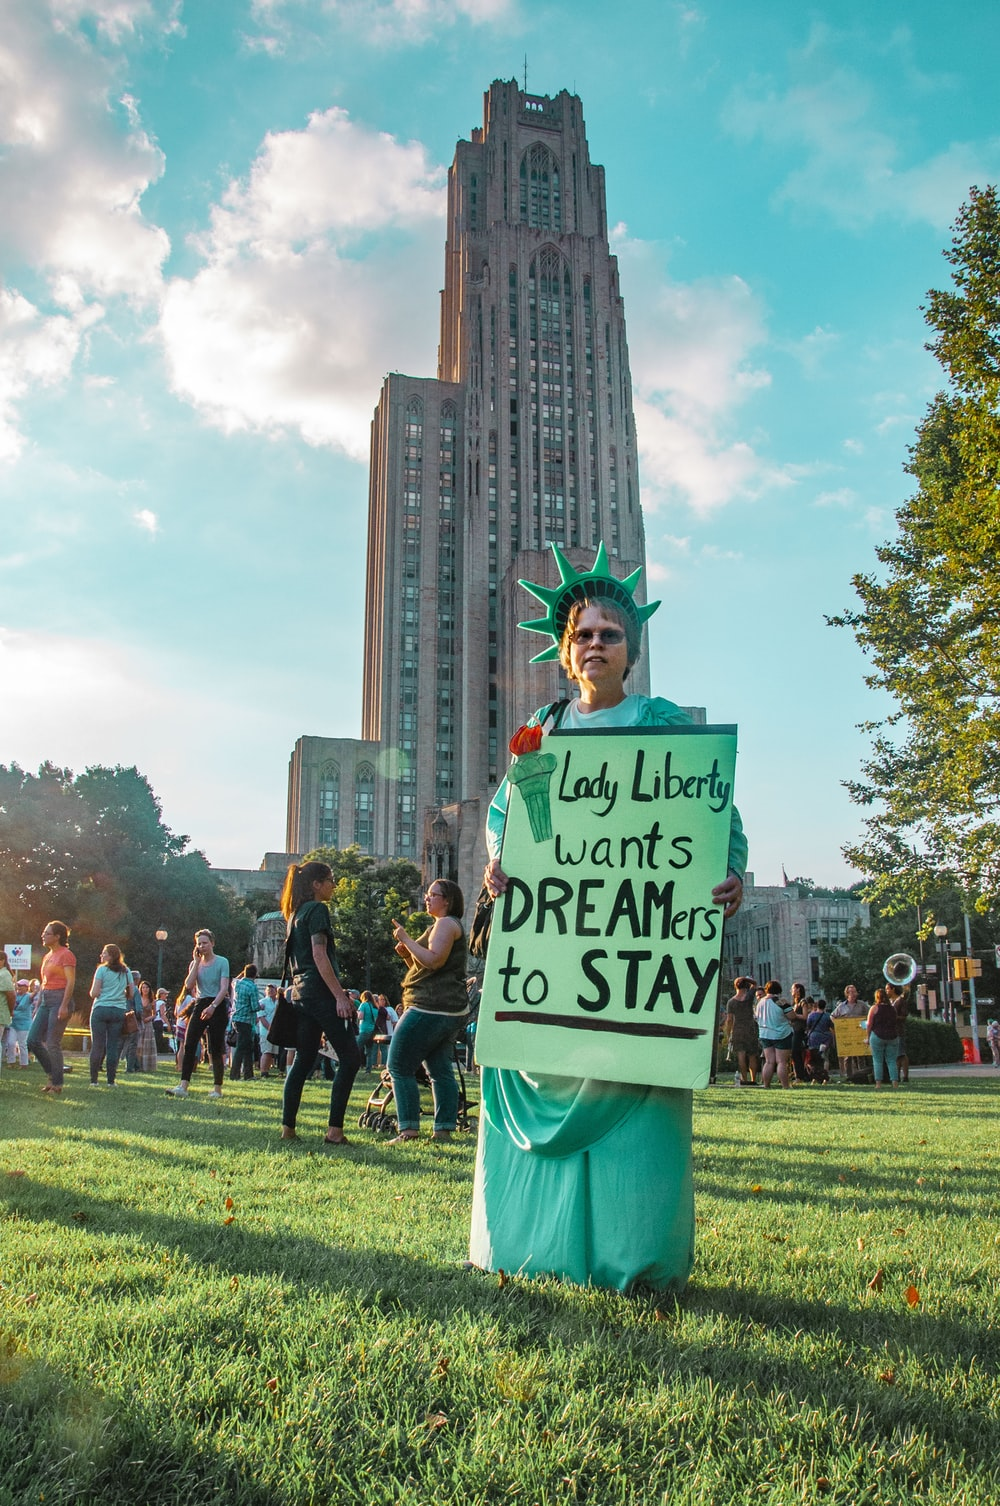 man holding Lady Liberty wants dreamers to stay signage